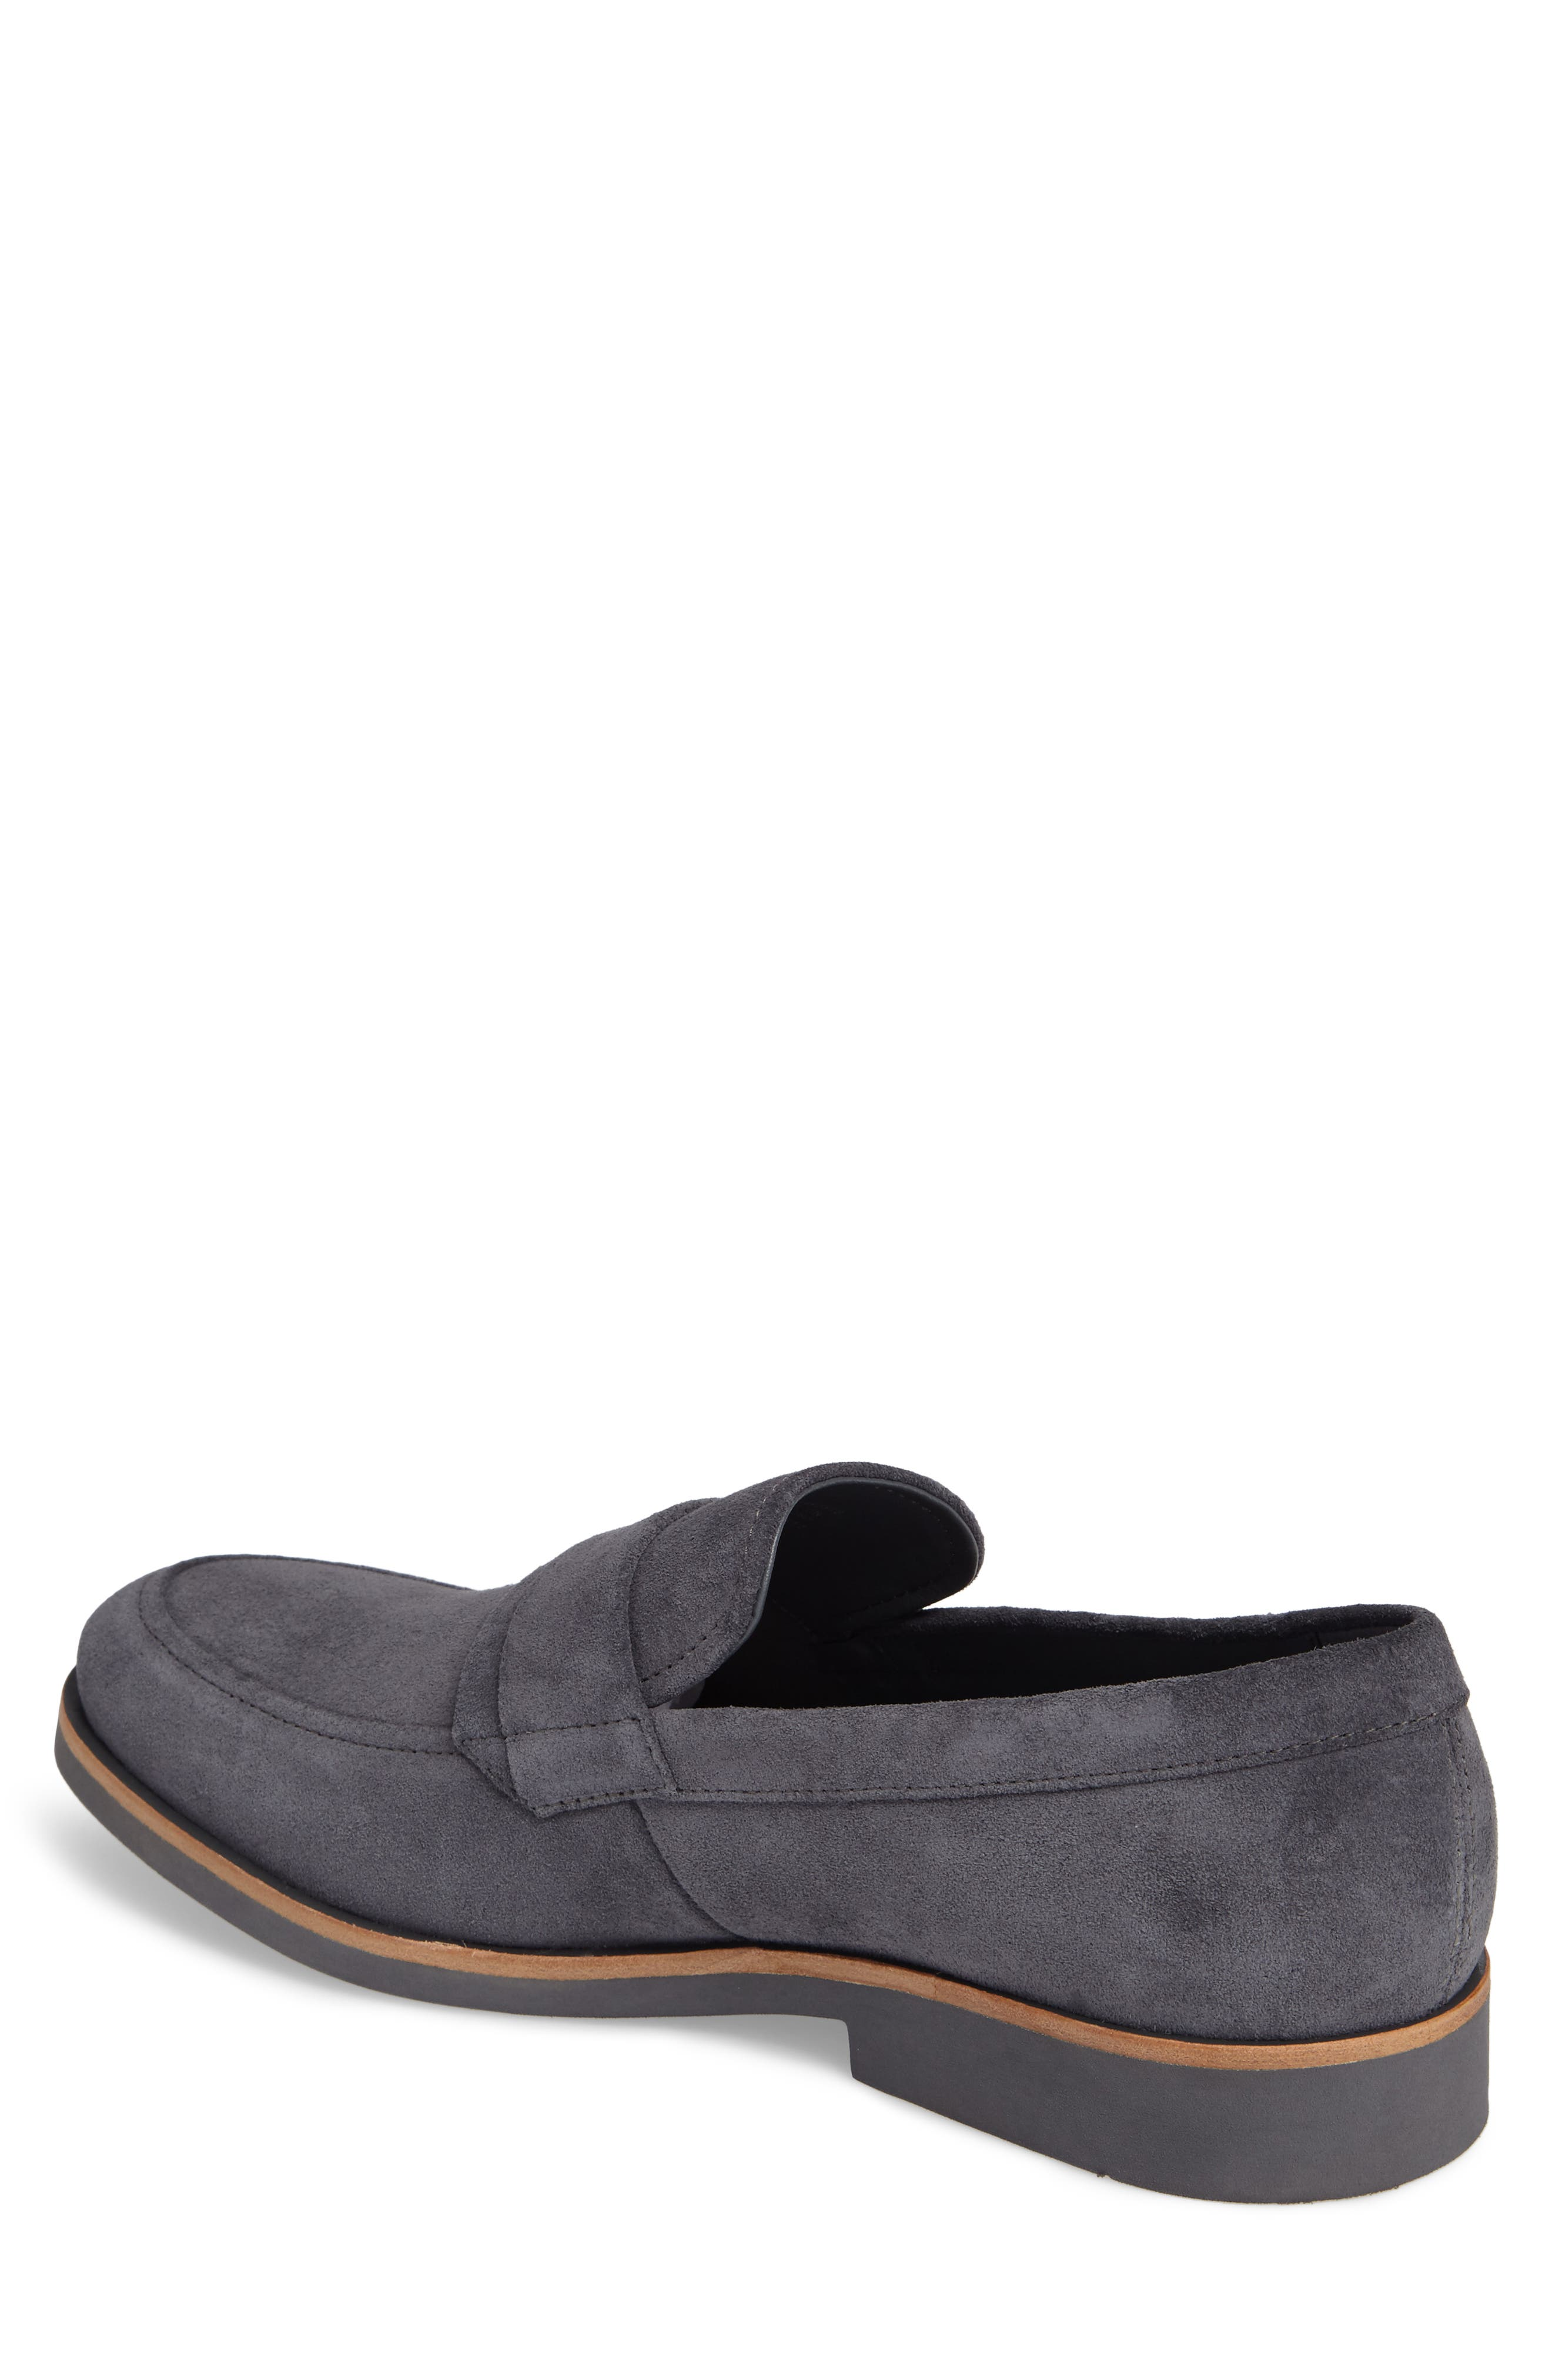 Forbes Loafer,                             Alternate thumbnail 2, color,                             020